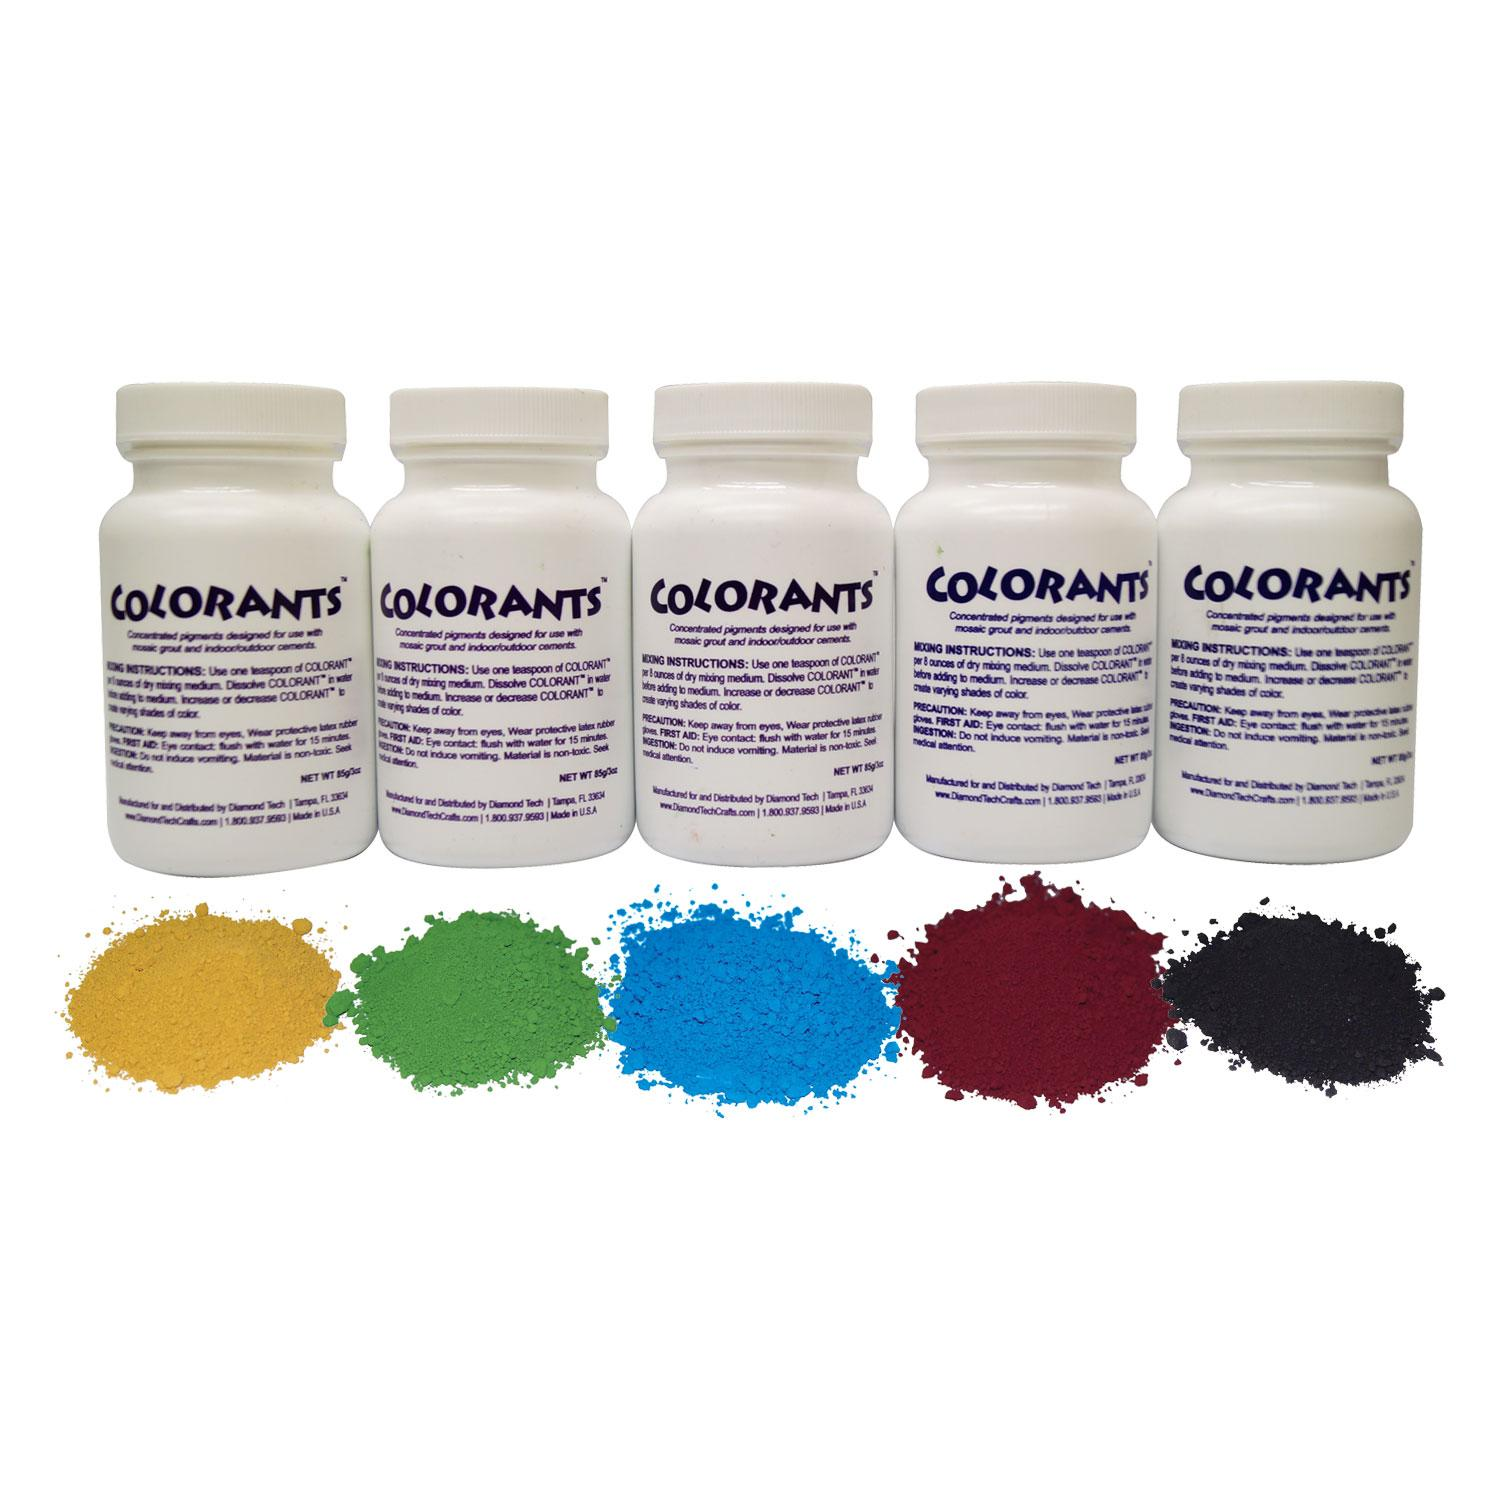 Primary Colorant Assortment - 5 Pack